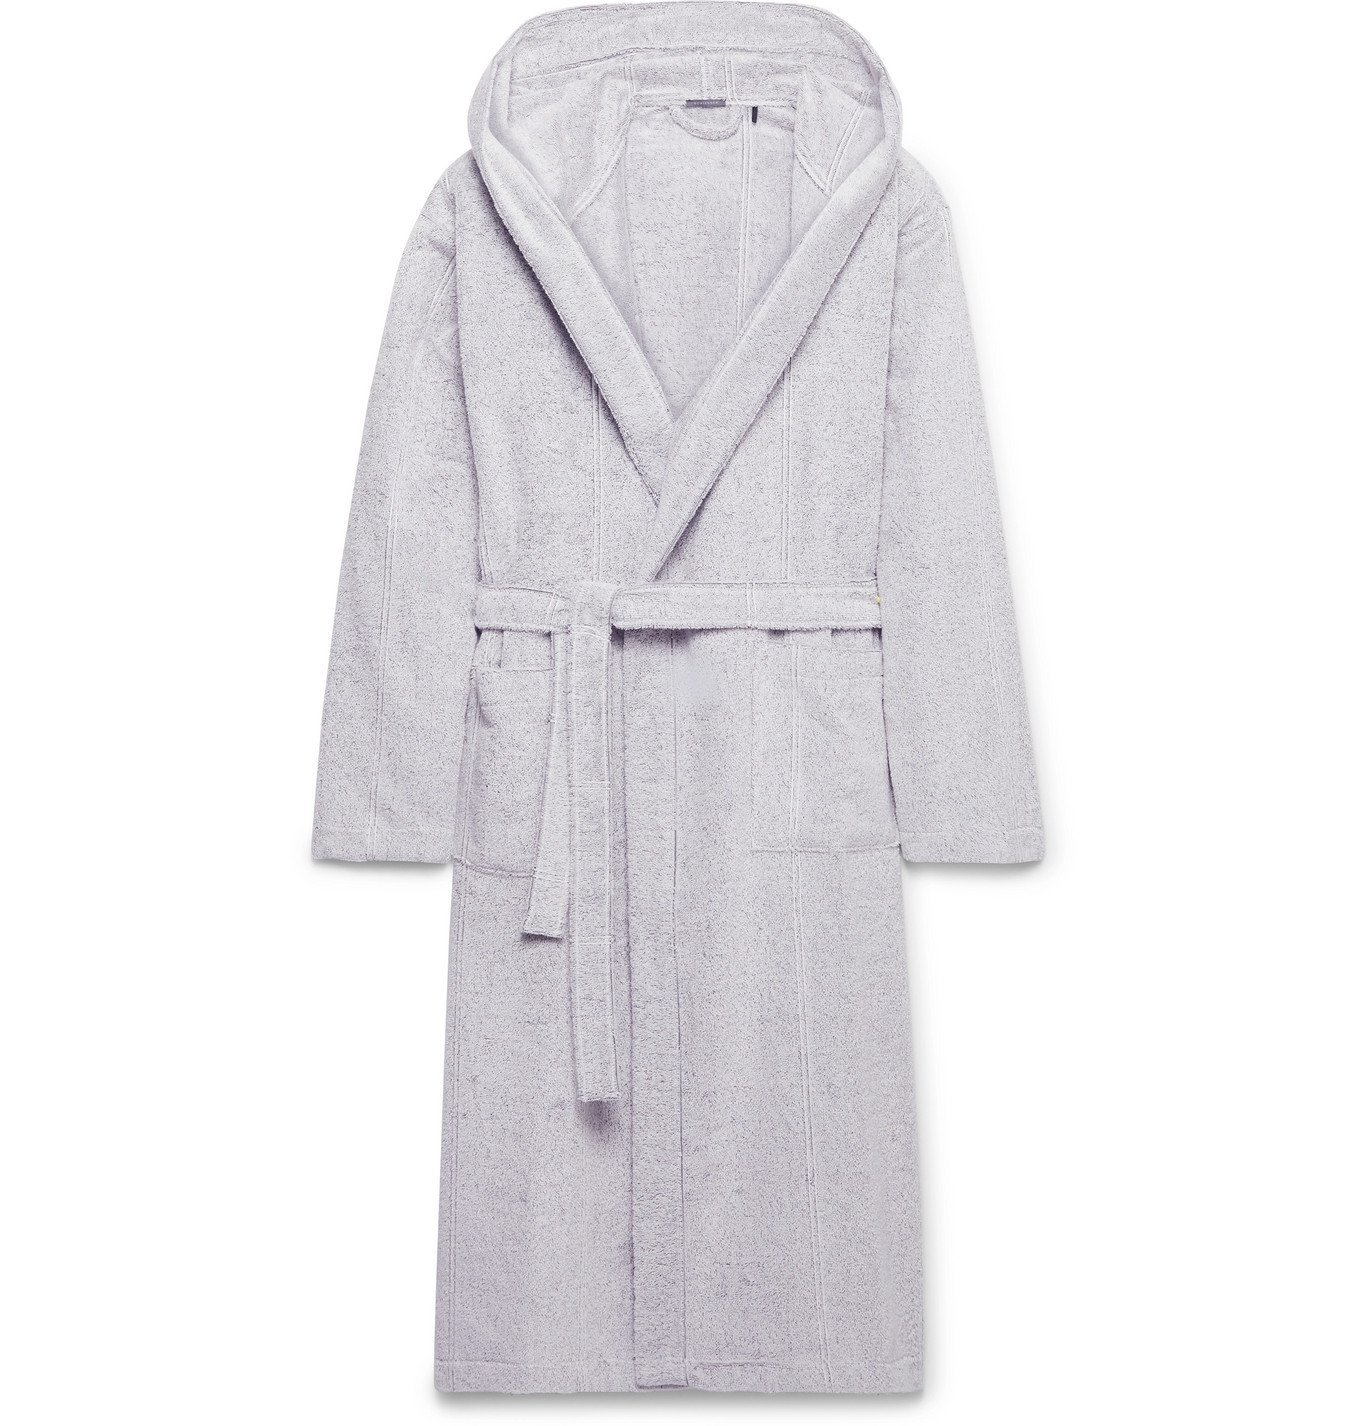 Schiesser - Striped Cotton-Terry Hooded Robe - Gray